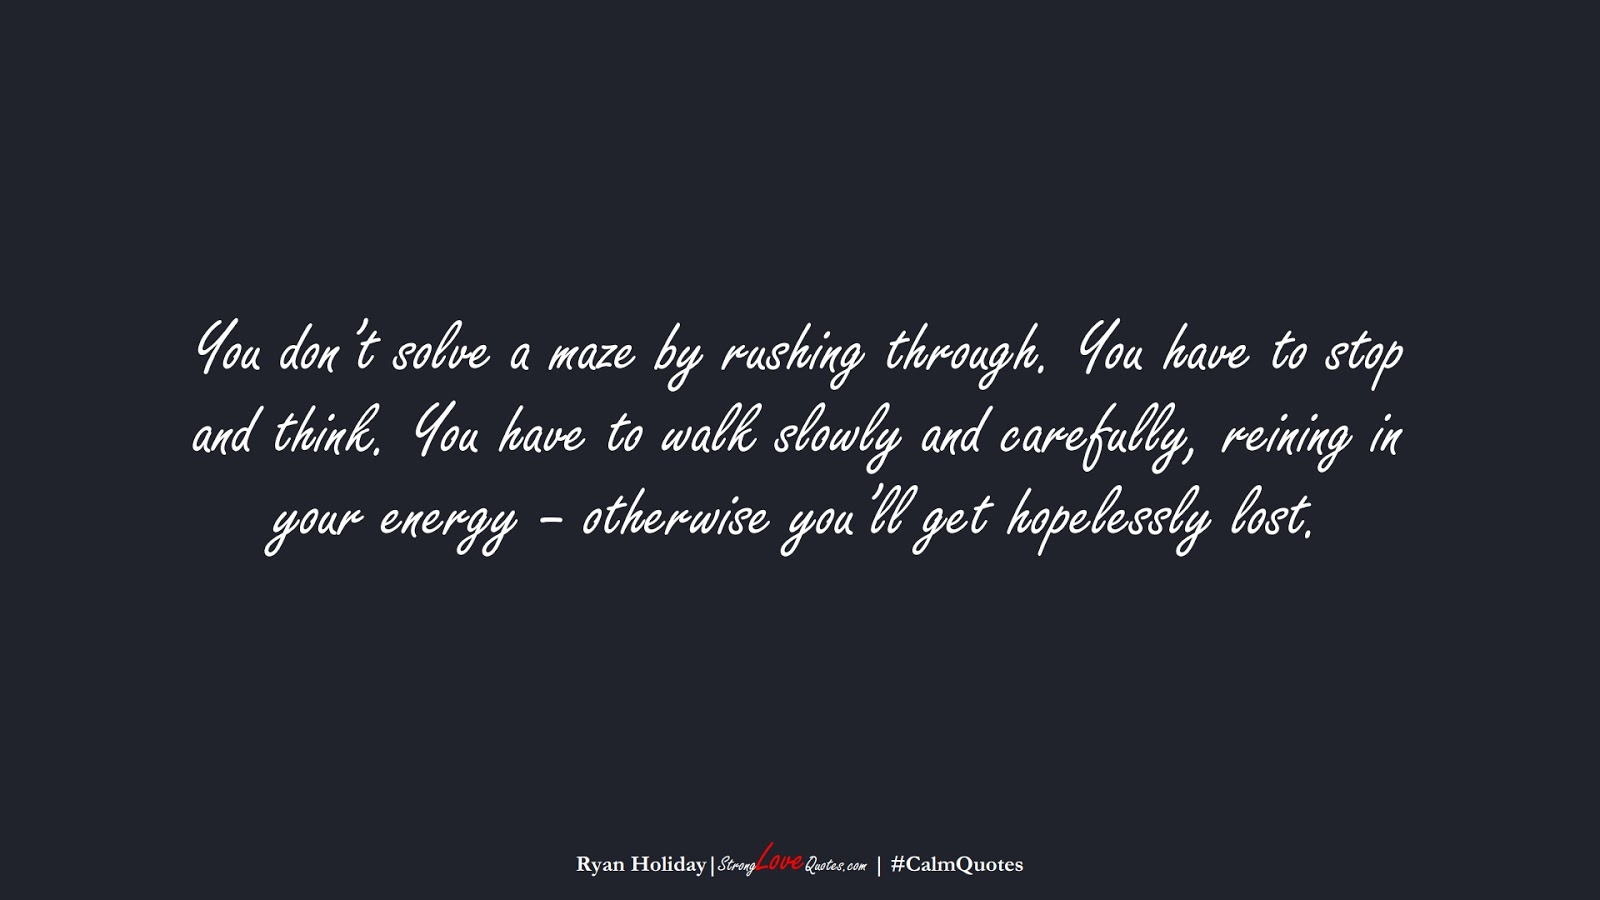 You don't solve a maze by rushing through. You have to stop and think. You have to walk slowly and carefully, reining in your energy – otherwise you'll get hopelessly lost. (Ryan Holiday);  #CalmQuotes